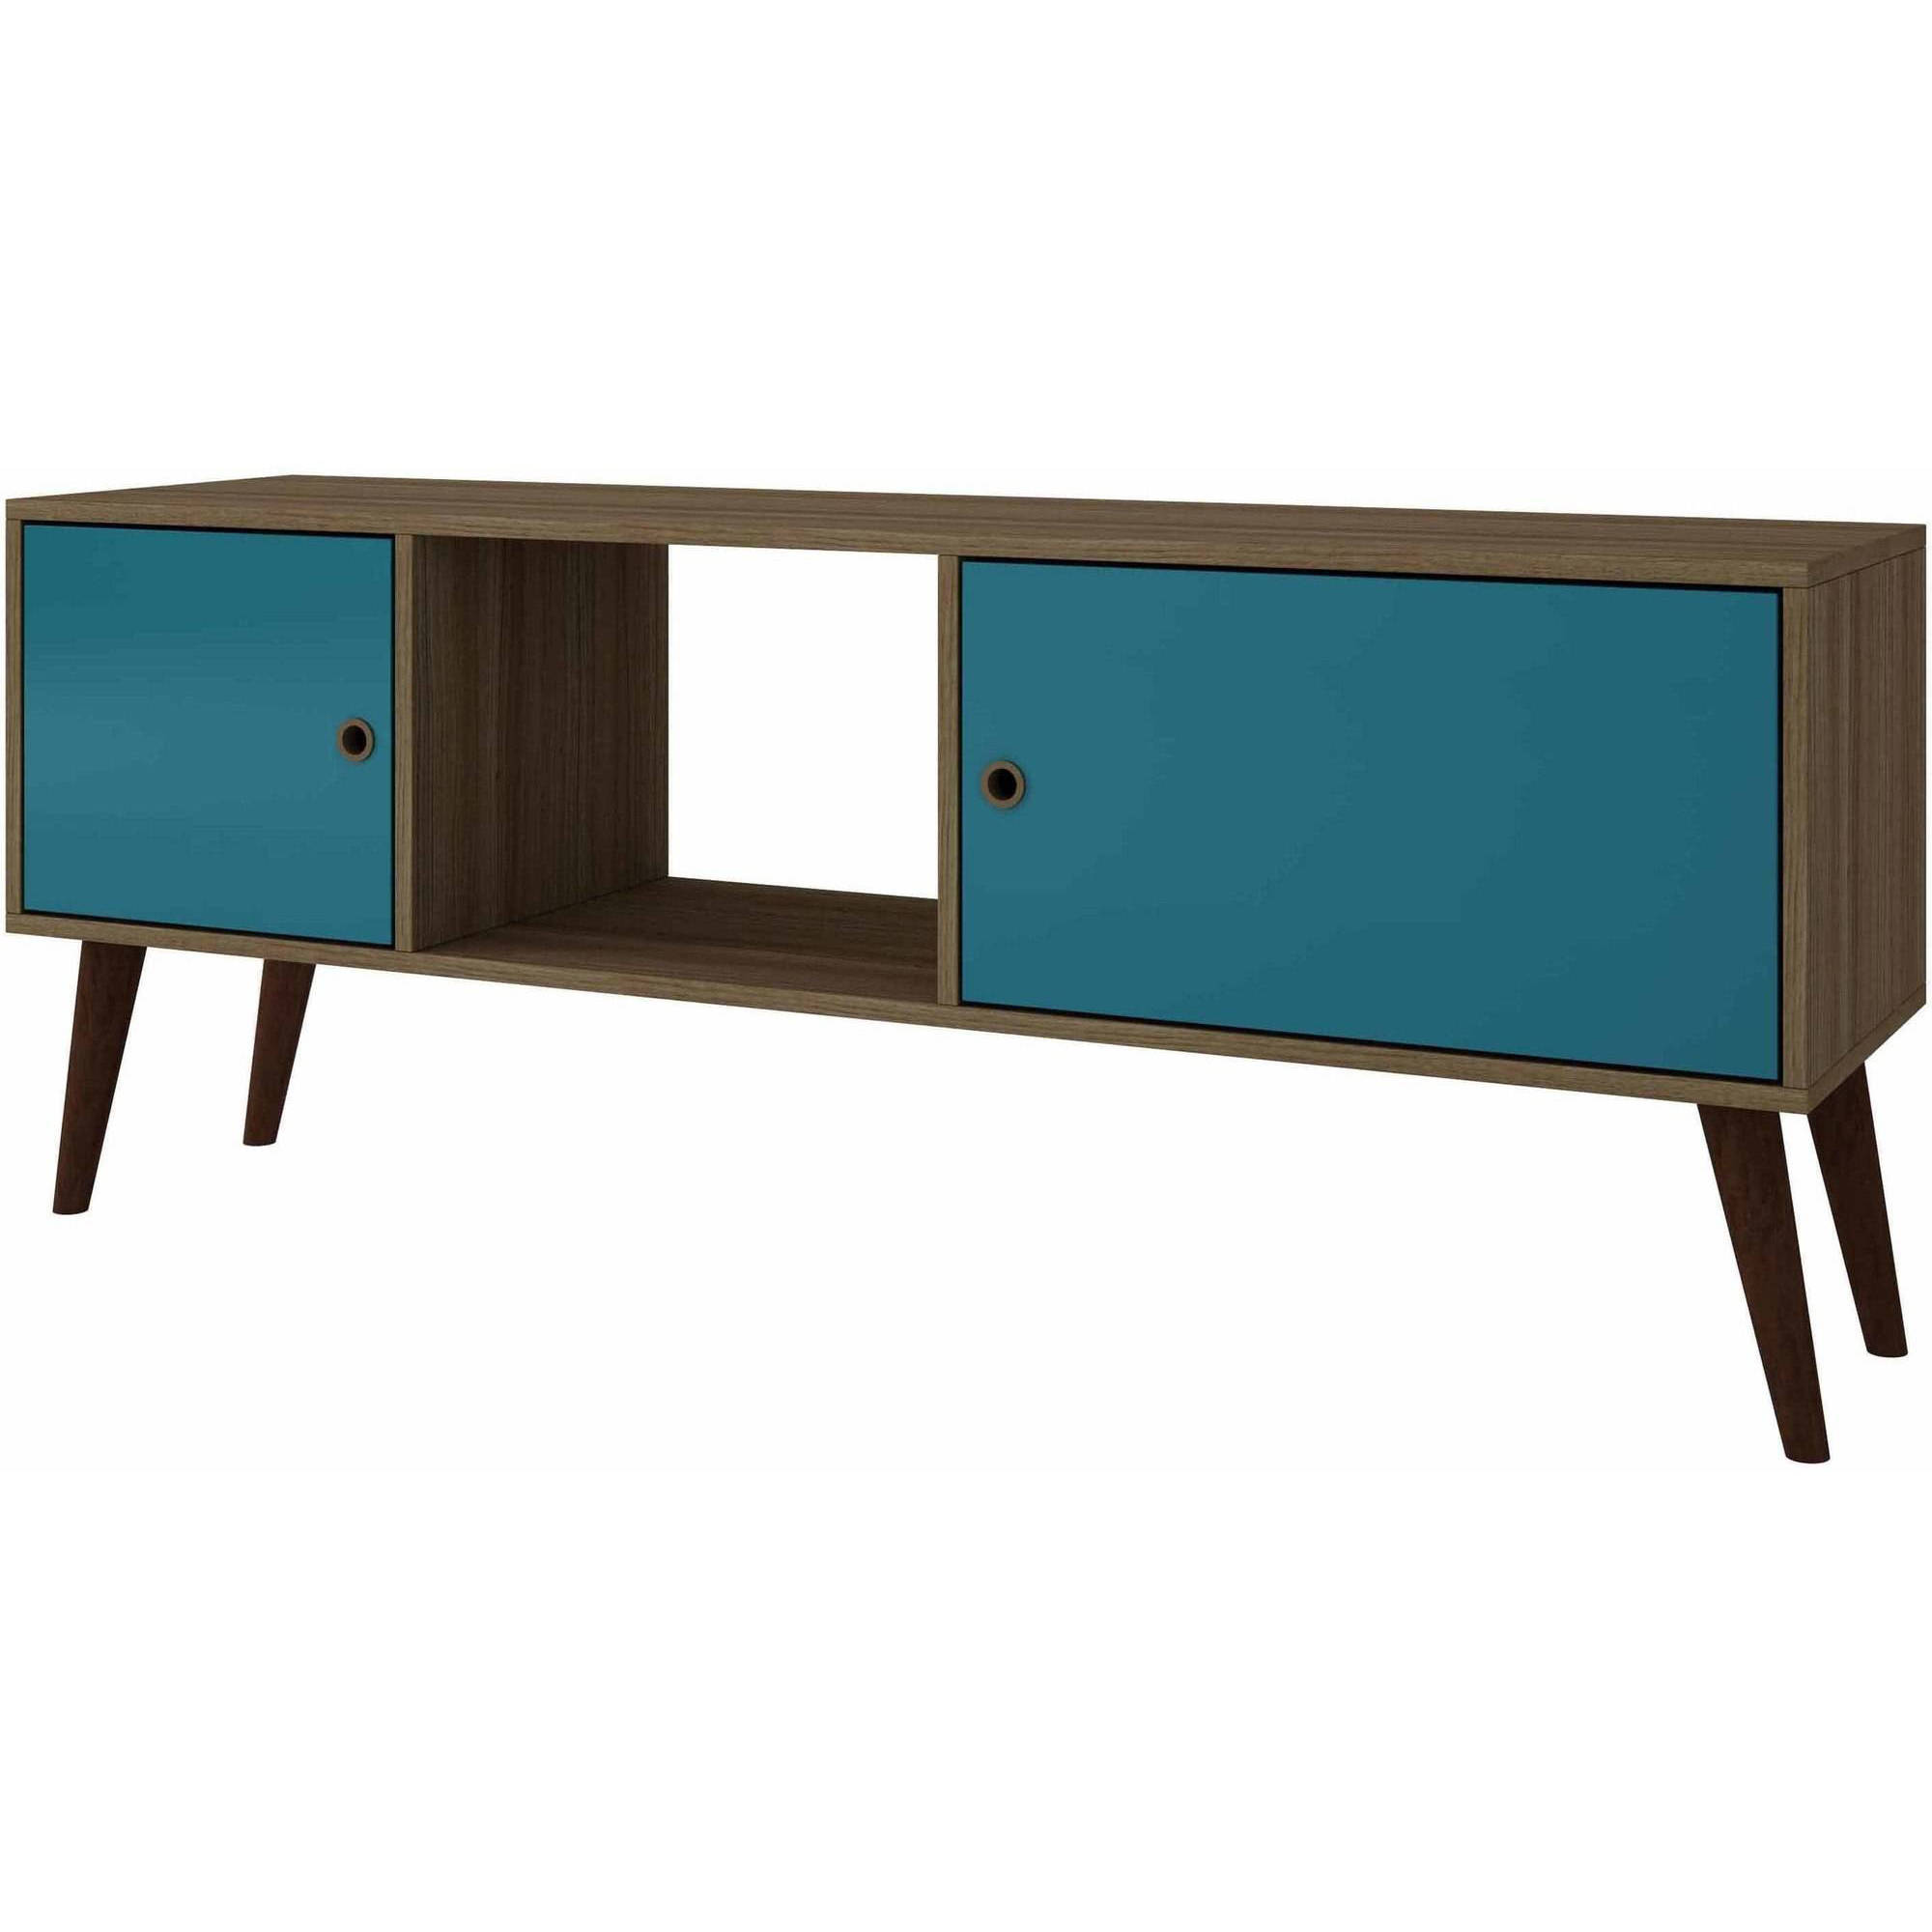 Image of Manhattan Comfort Accentuations Varberg Splayed-Leg TV Stand